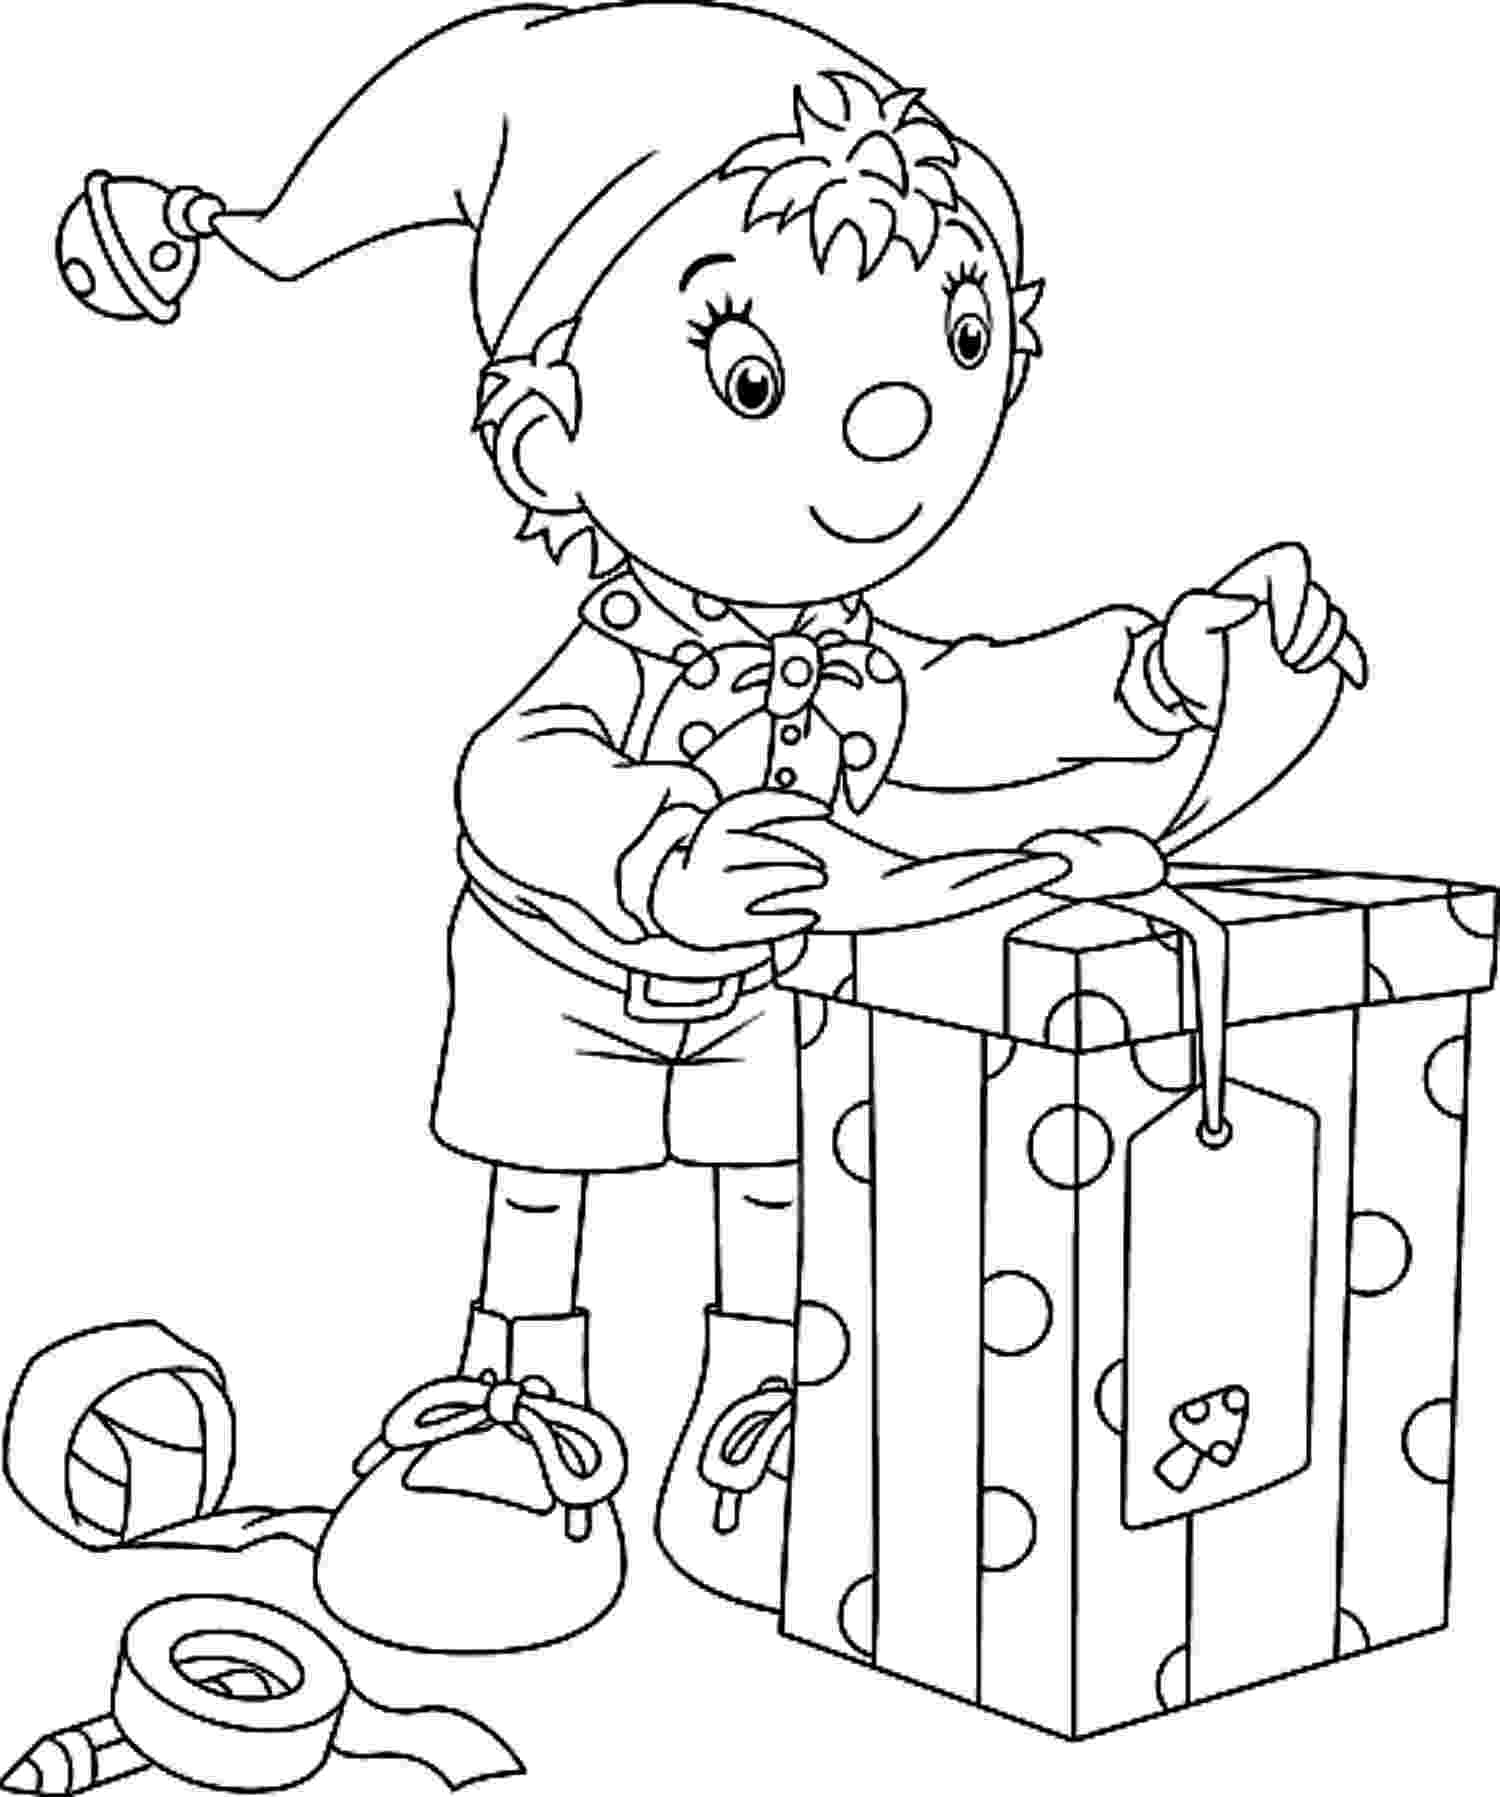 printable christmas coloring pages for kindergarten print download printable christmas coloring pages for kids pages coloring for christmas kindergarten printable